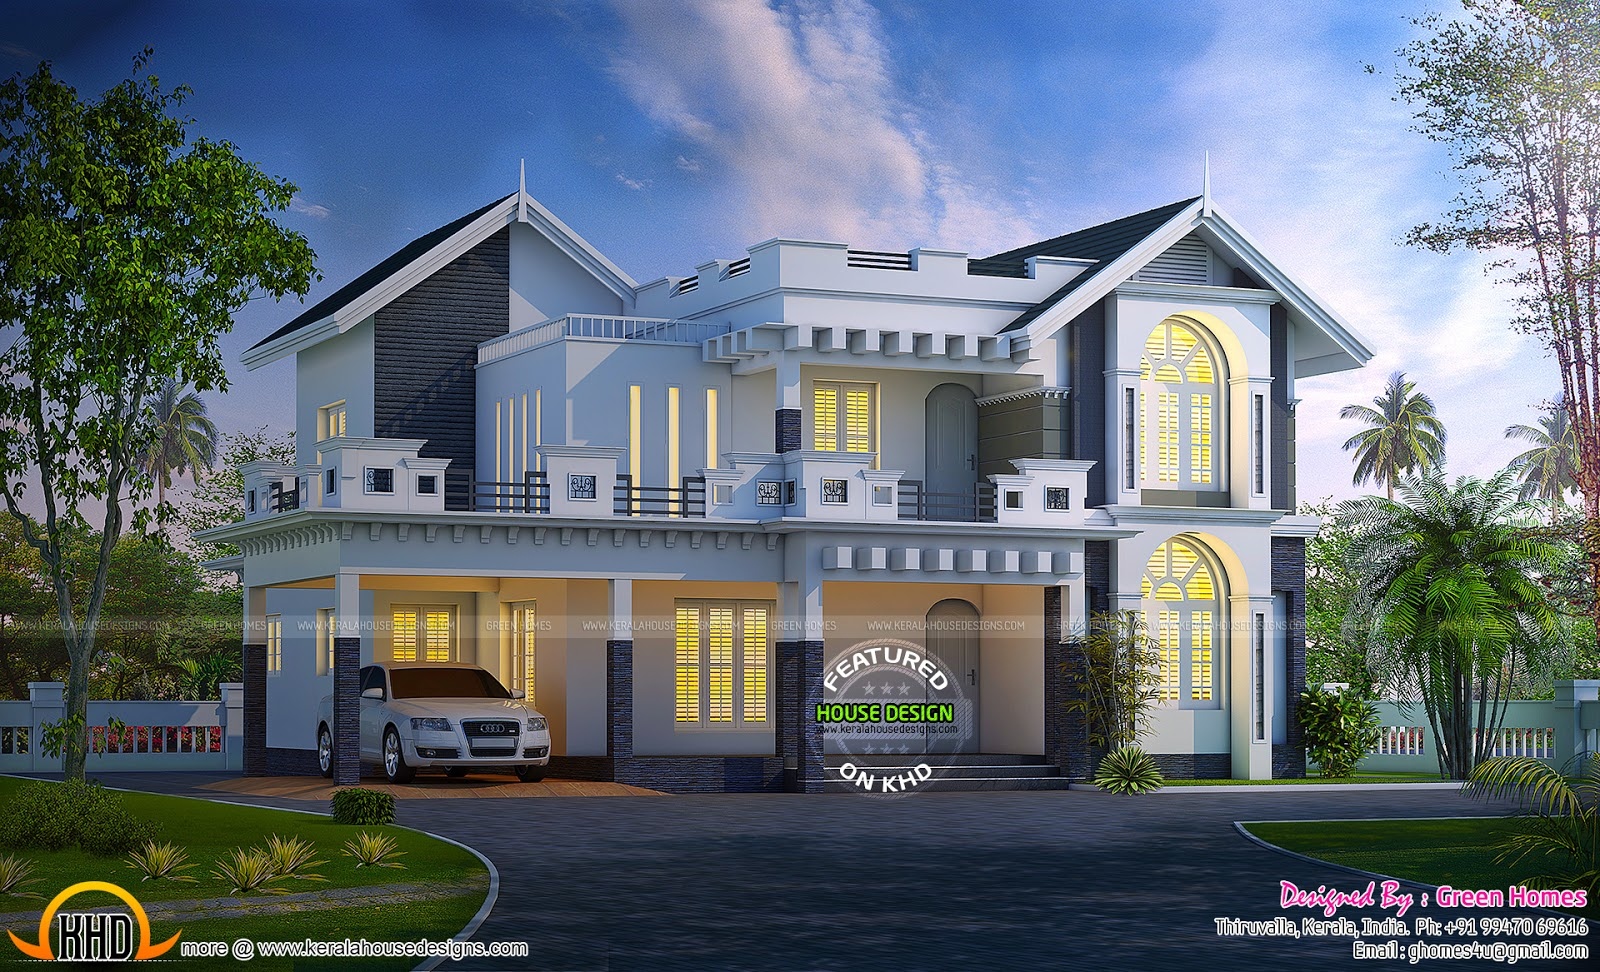 New kerala house plans for june 2015 keralahousedesigns for New houses in kerala